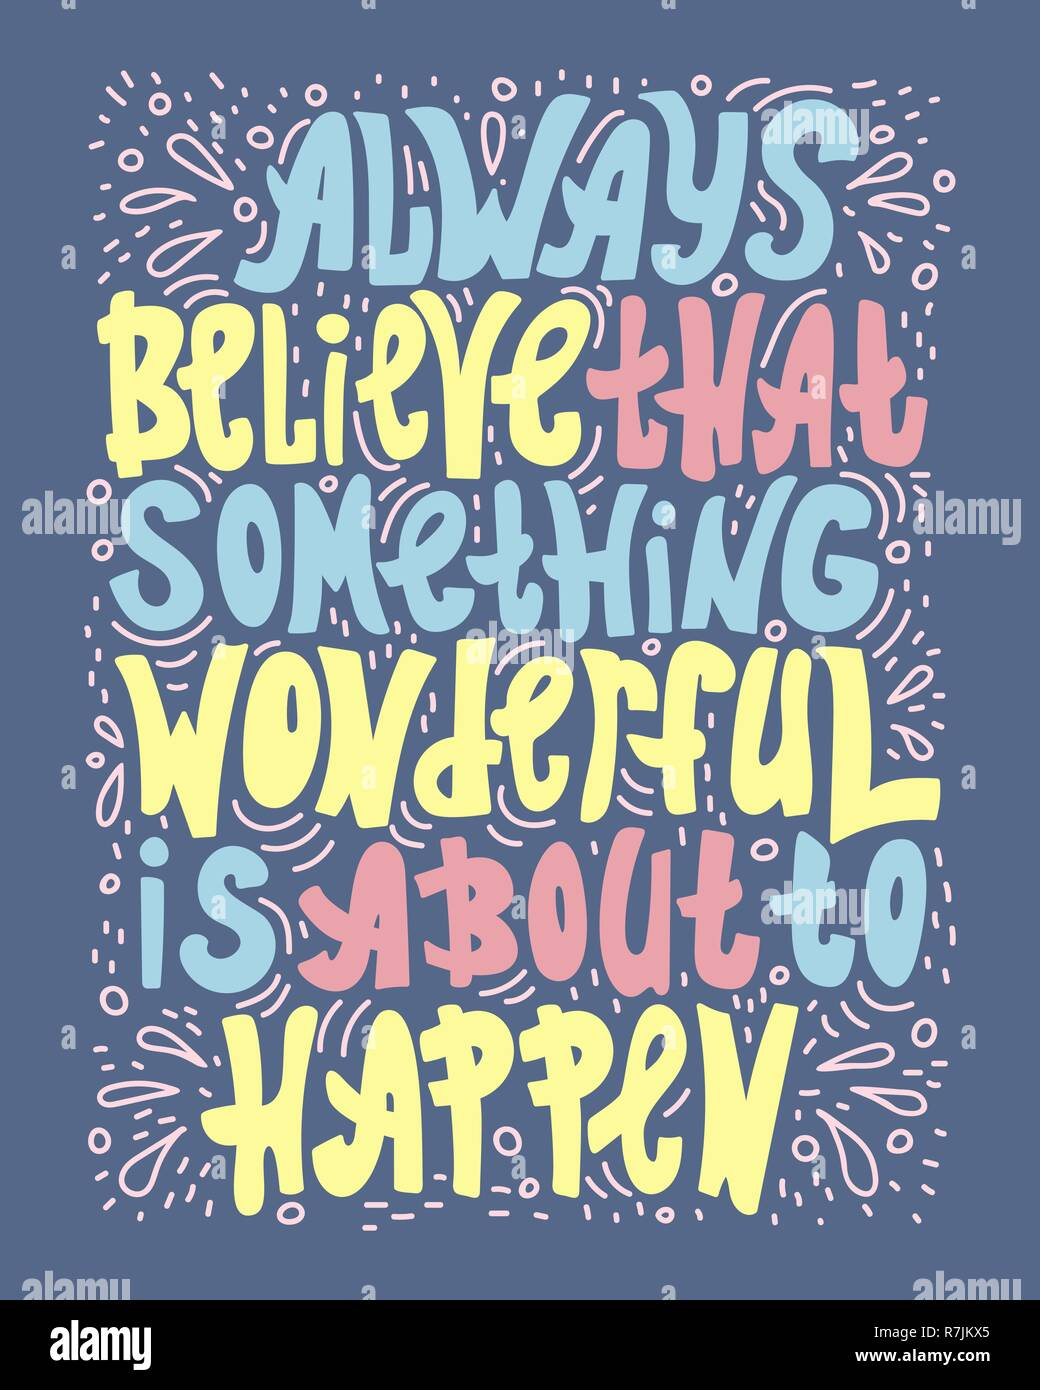 Illustrated hand drawn quote - Always believe that something wonderful is about to happen. - Stock Vector